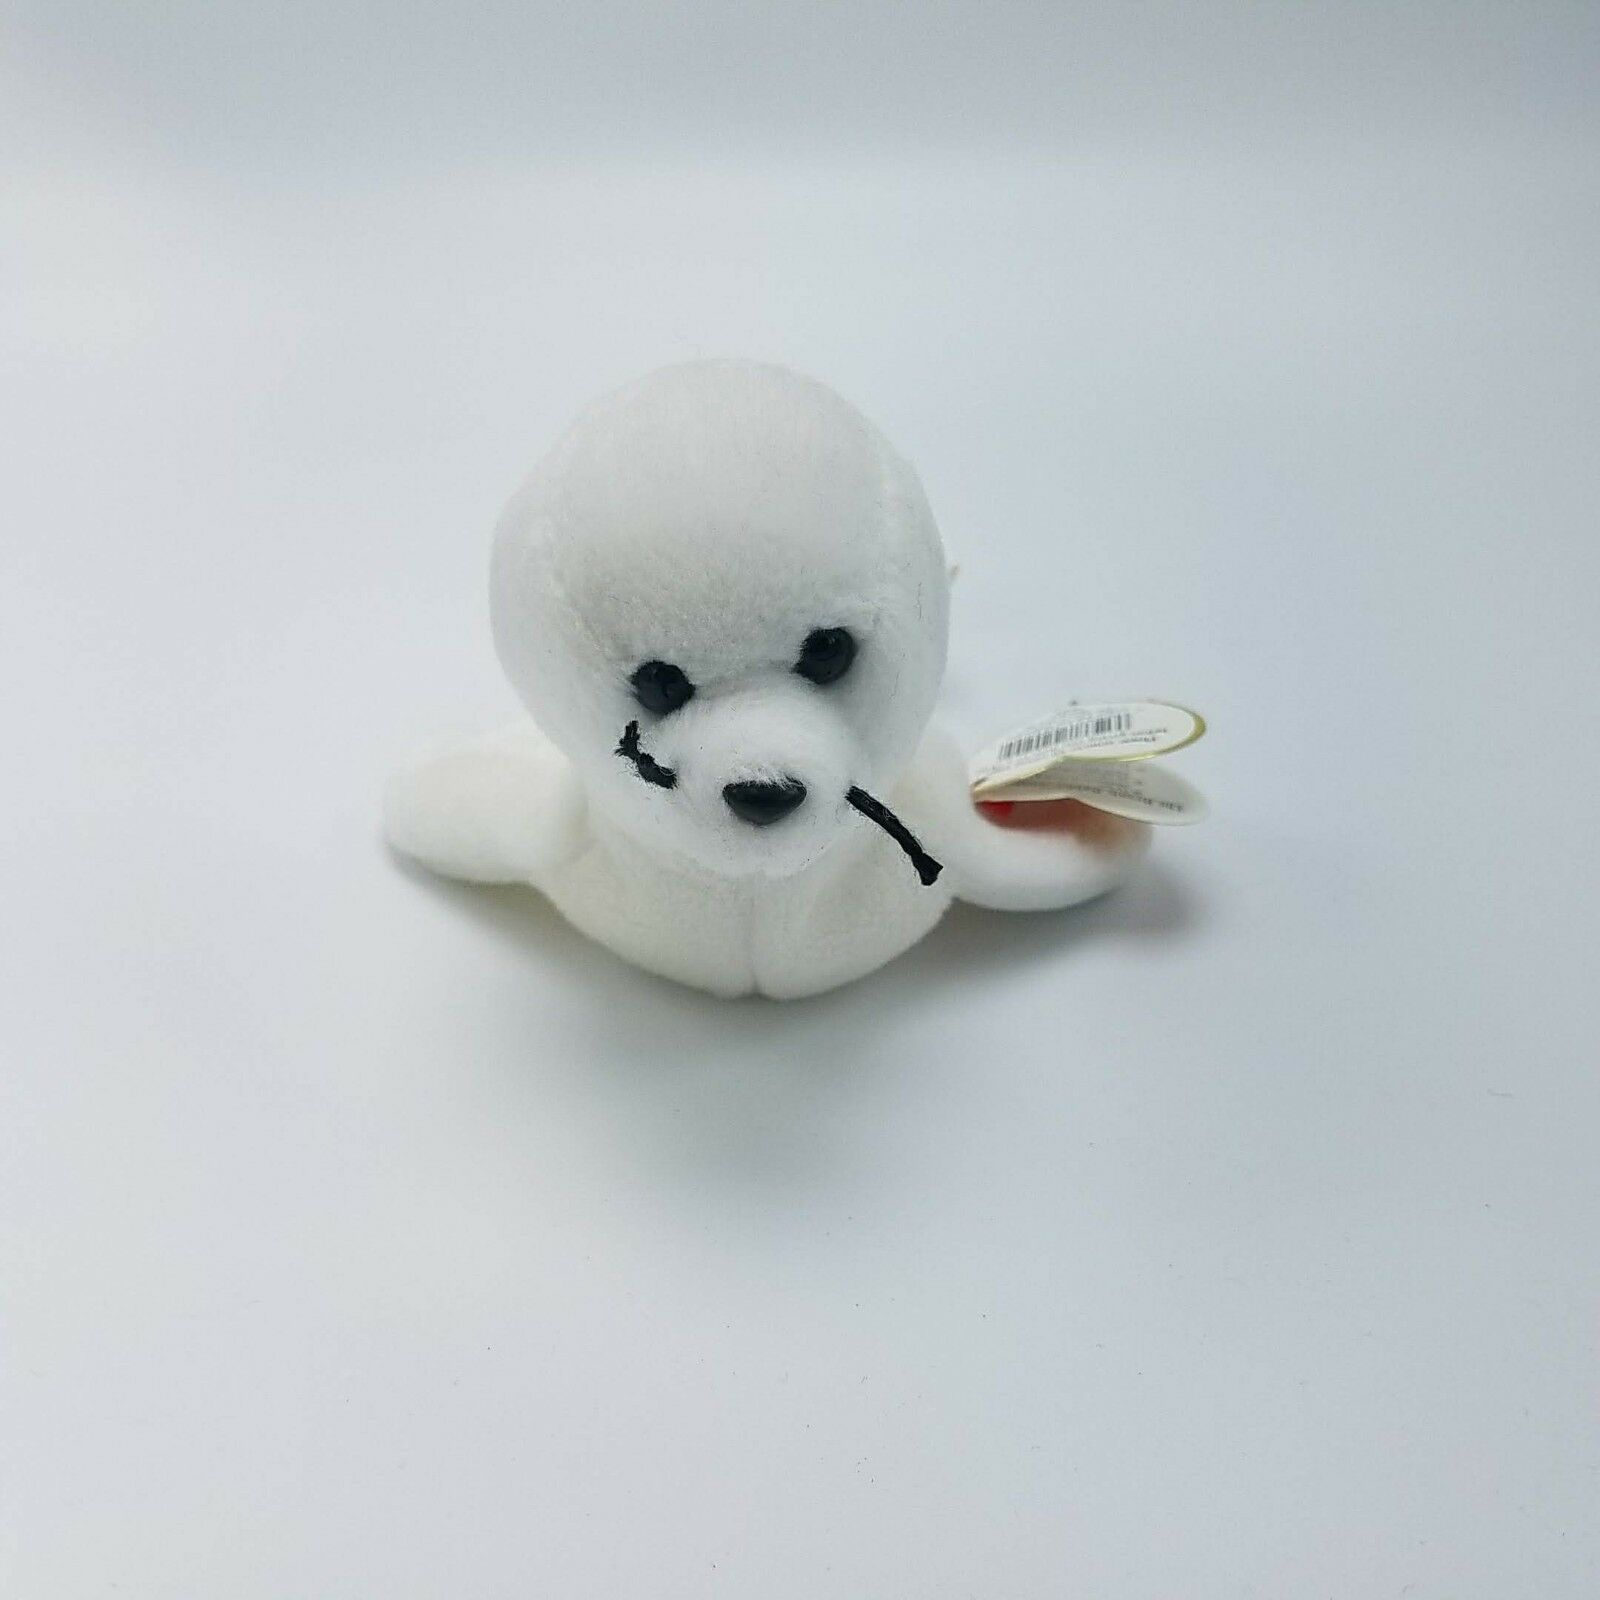 dd216a203fe TY Beanie Baby SEAMORE The Seal 4th Gen Hang Tag - 1st Gen Tush Tag Errors